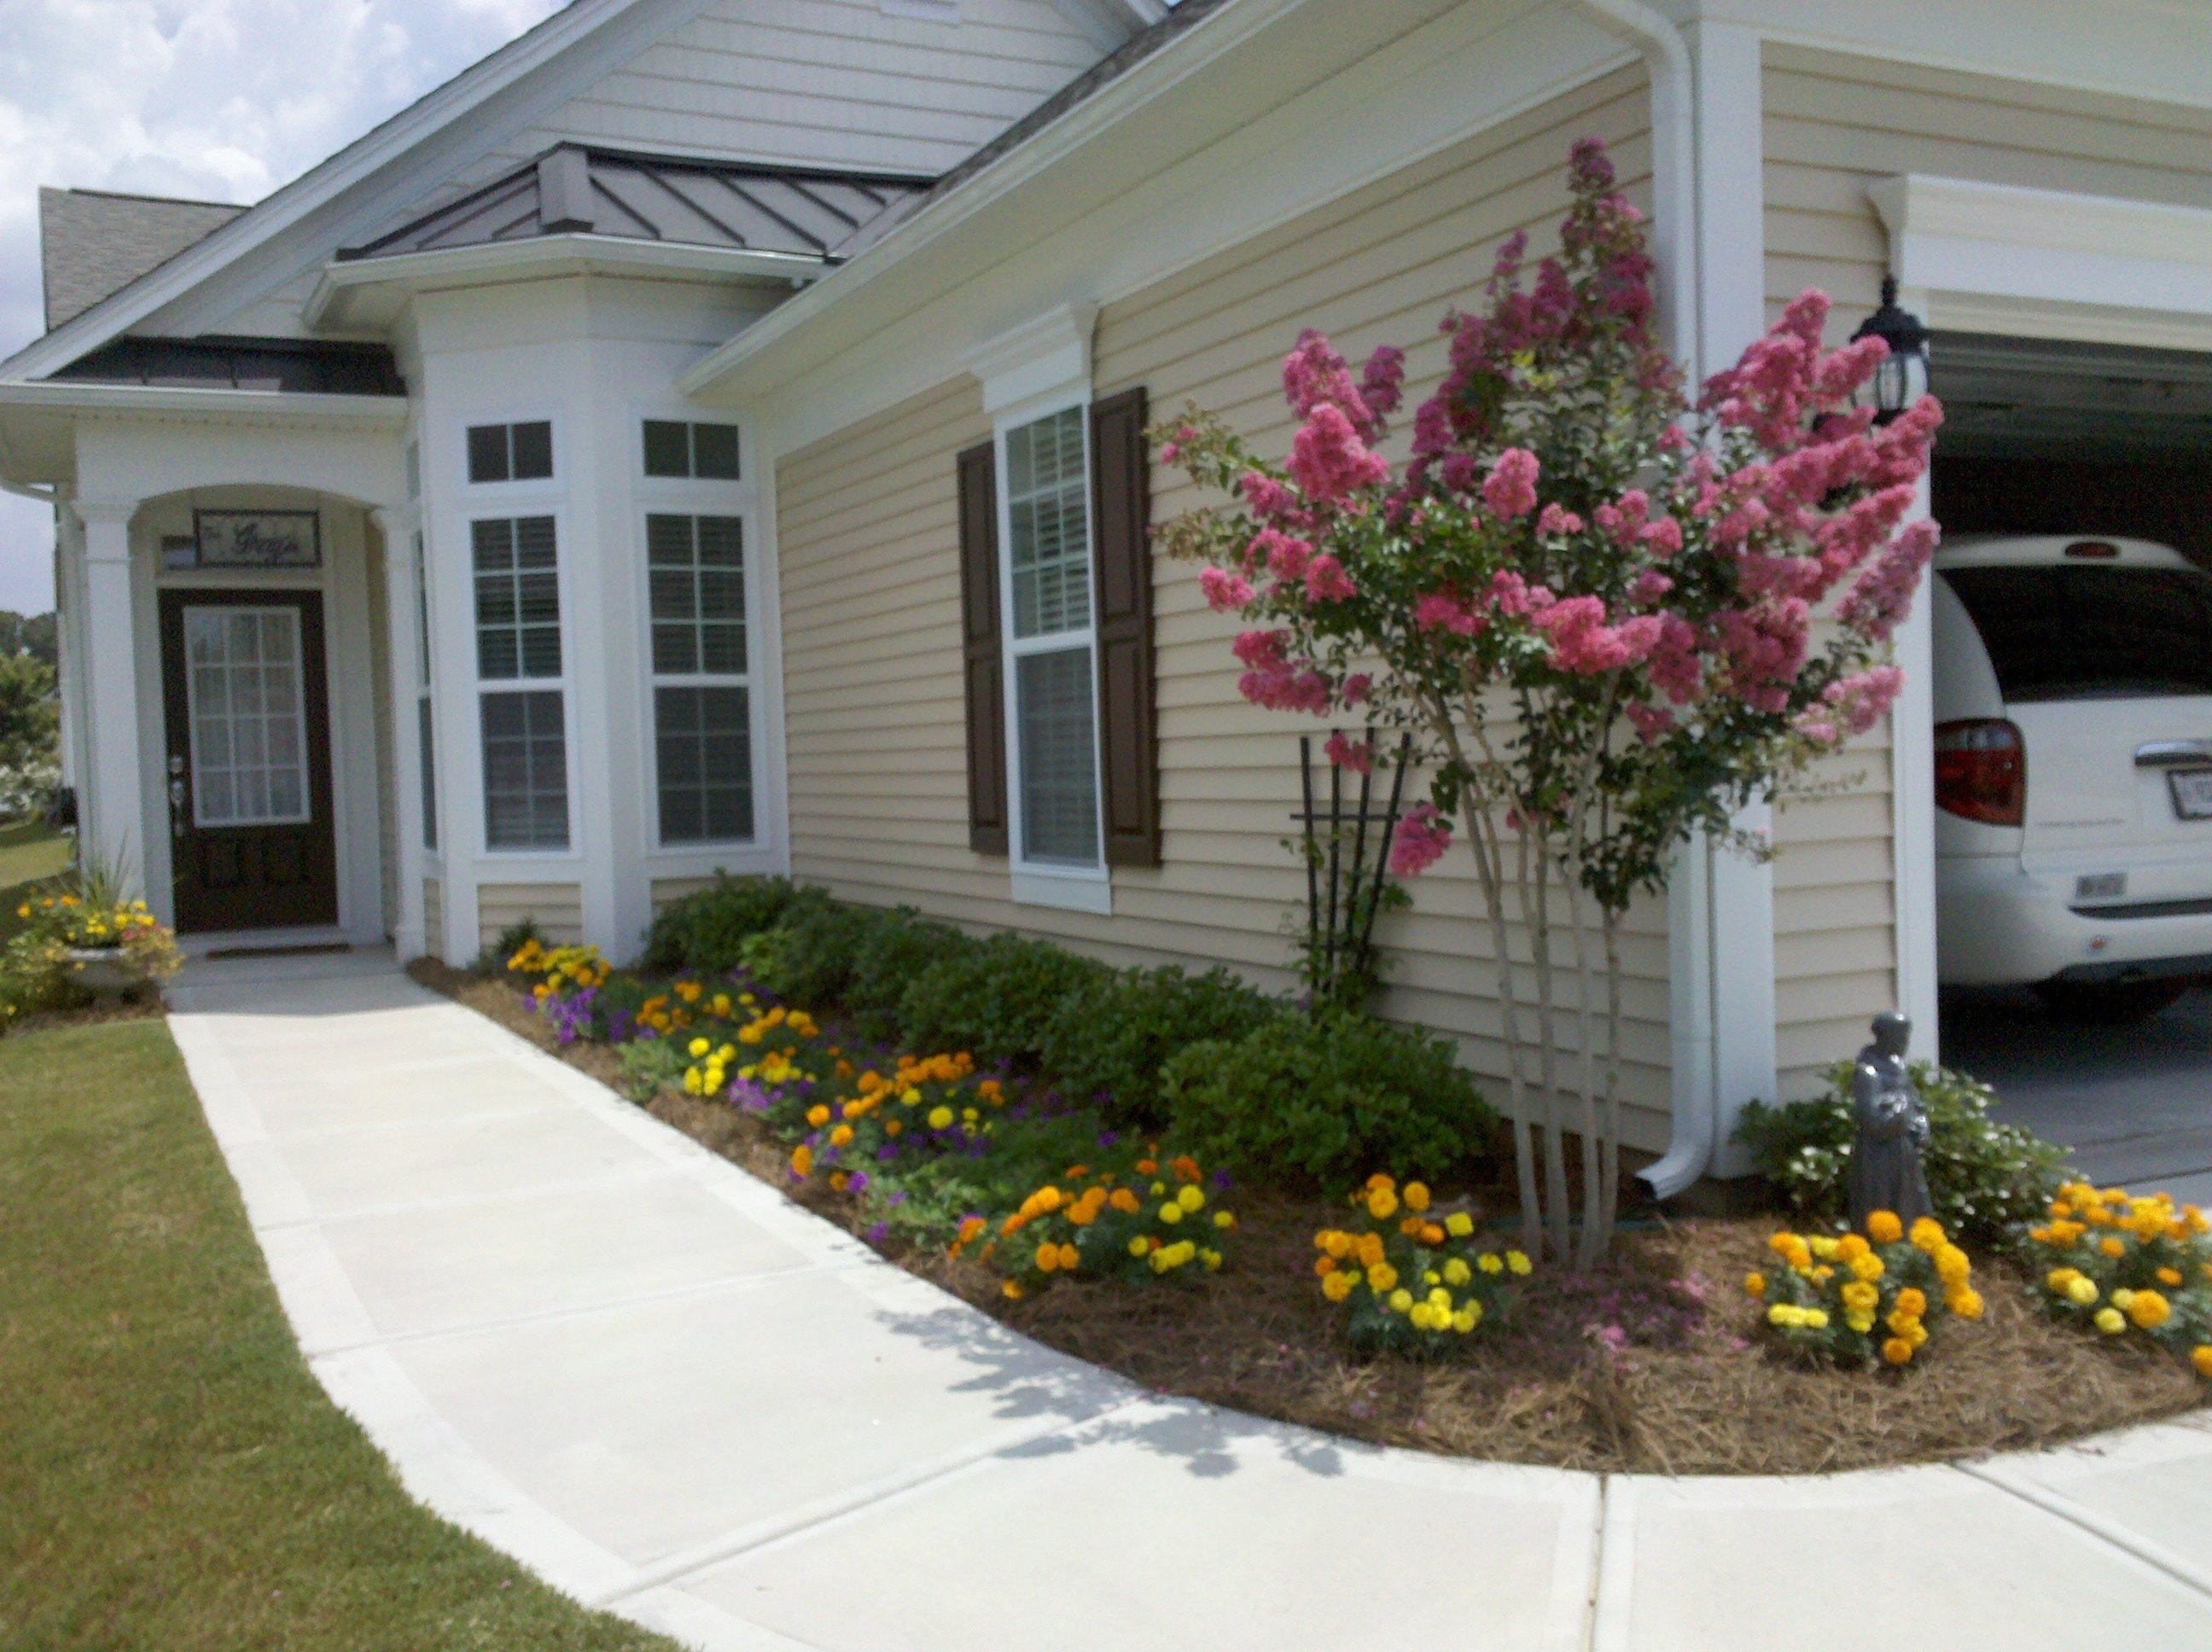 10 Spectacular Front Yard Flower Bed Ideas flower bed ideas front of house classic front yard flower garden 2020